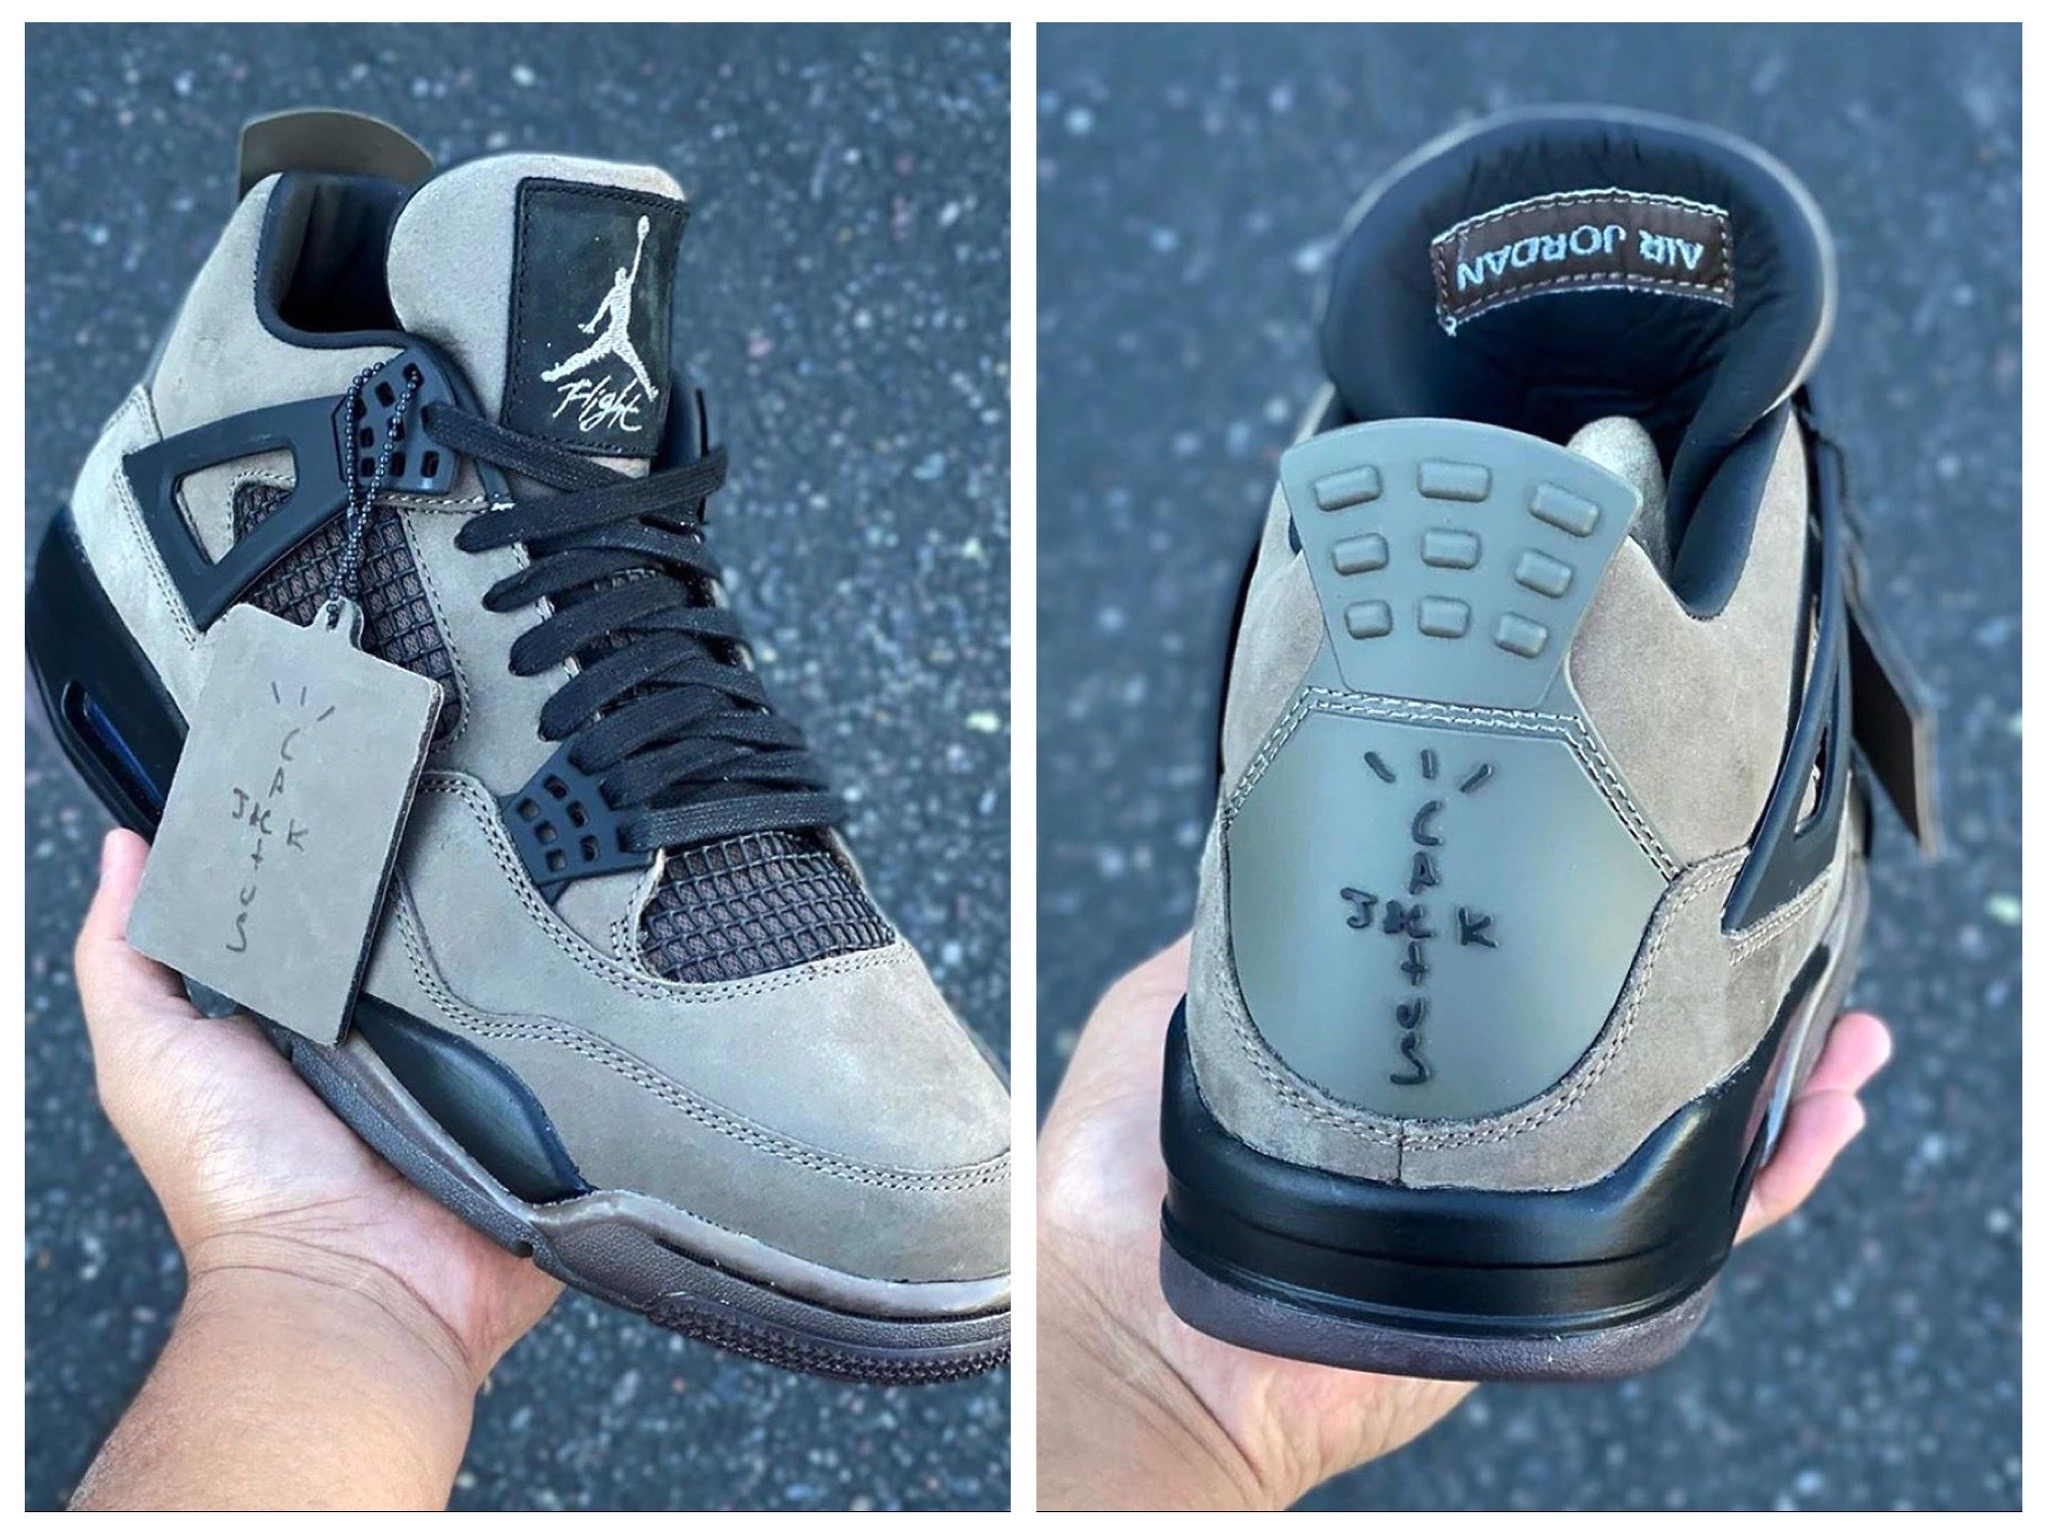 Travis Scott x Air Jordan IV「Olive」实物图再度曝光